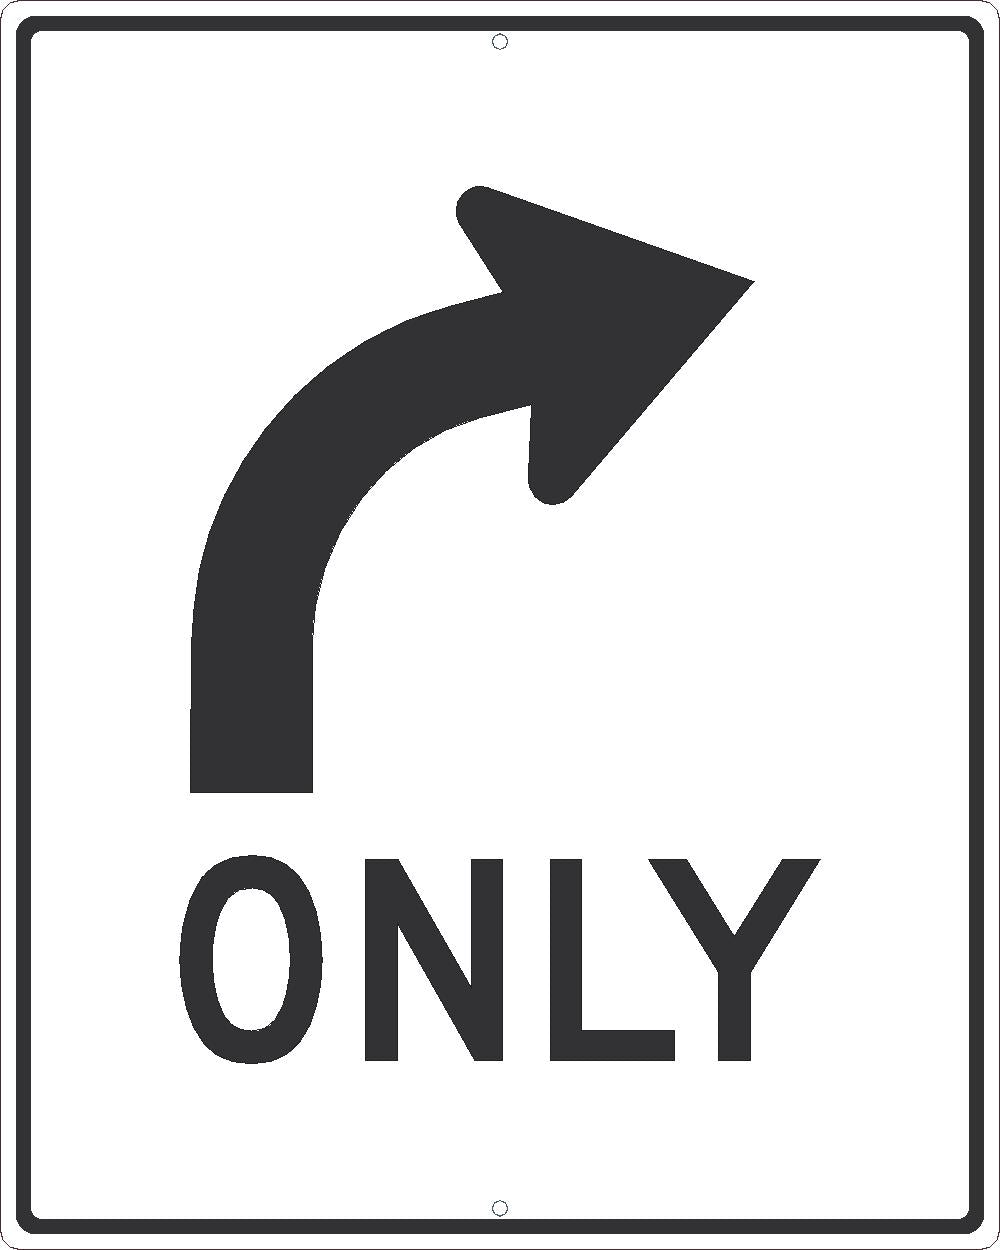 ONLY (RIGHT TURN ARROW WITH GRAPHIC)SIGN, 30X24,.080 EGP REF ALUM